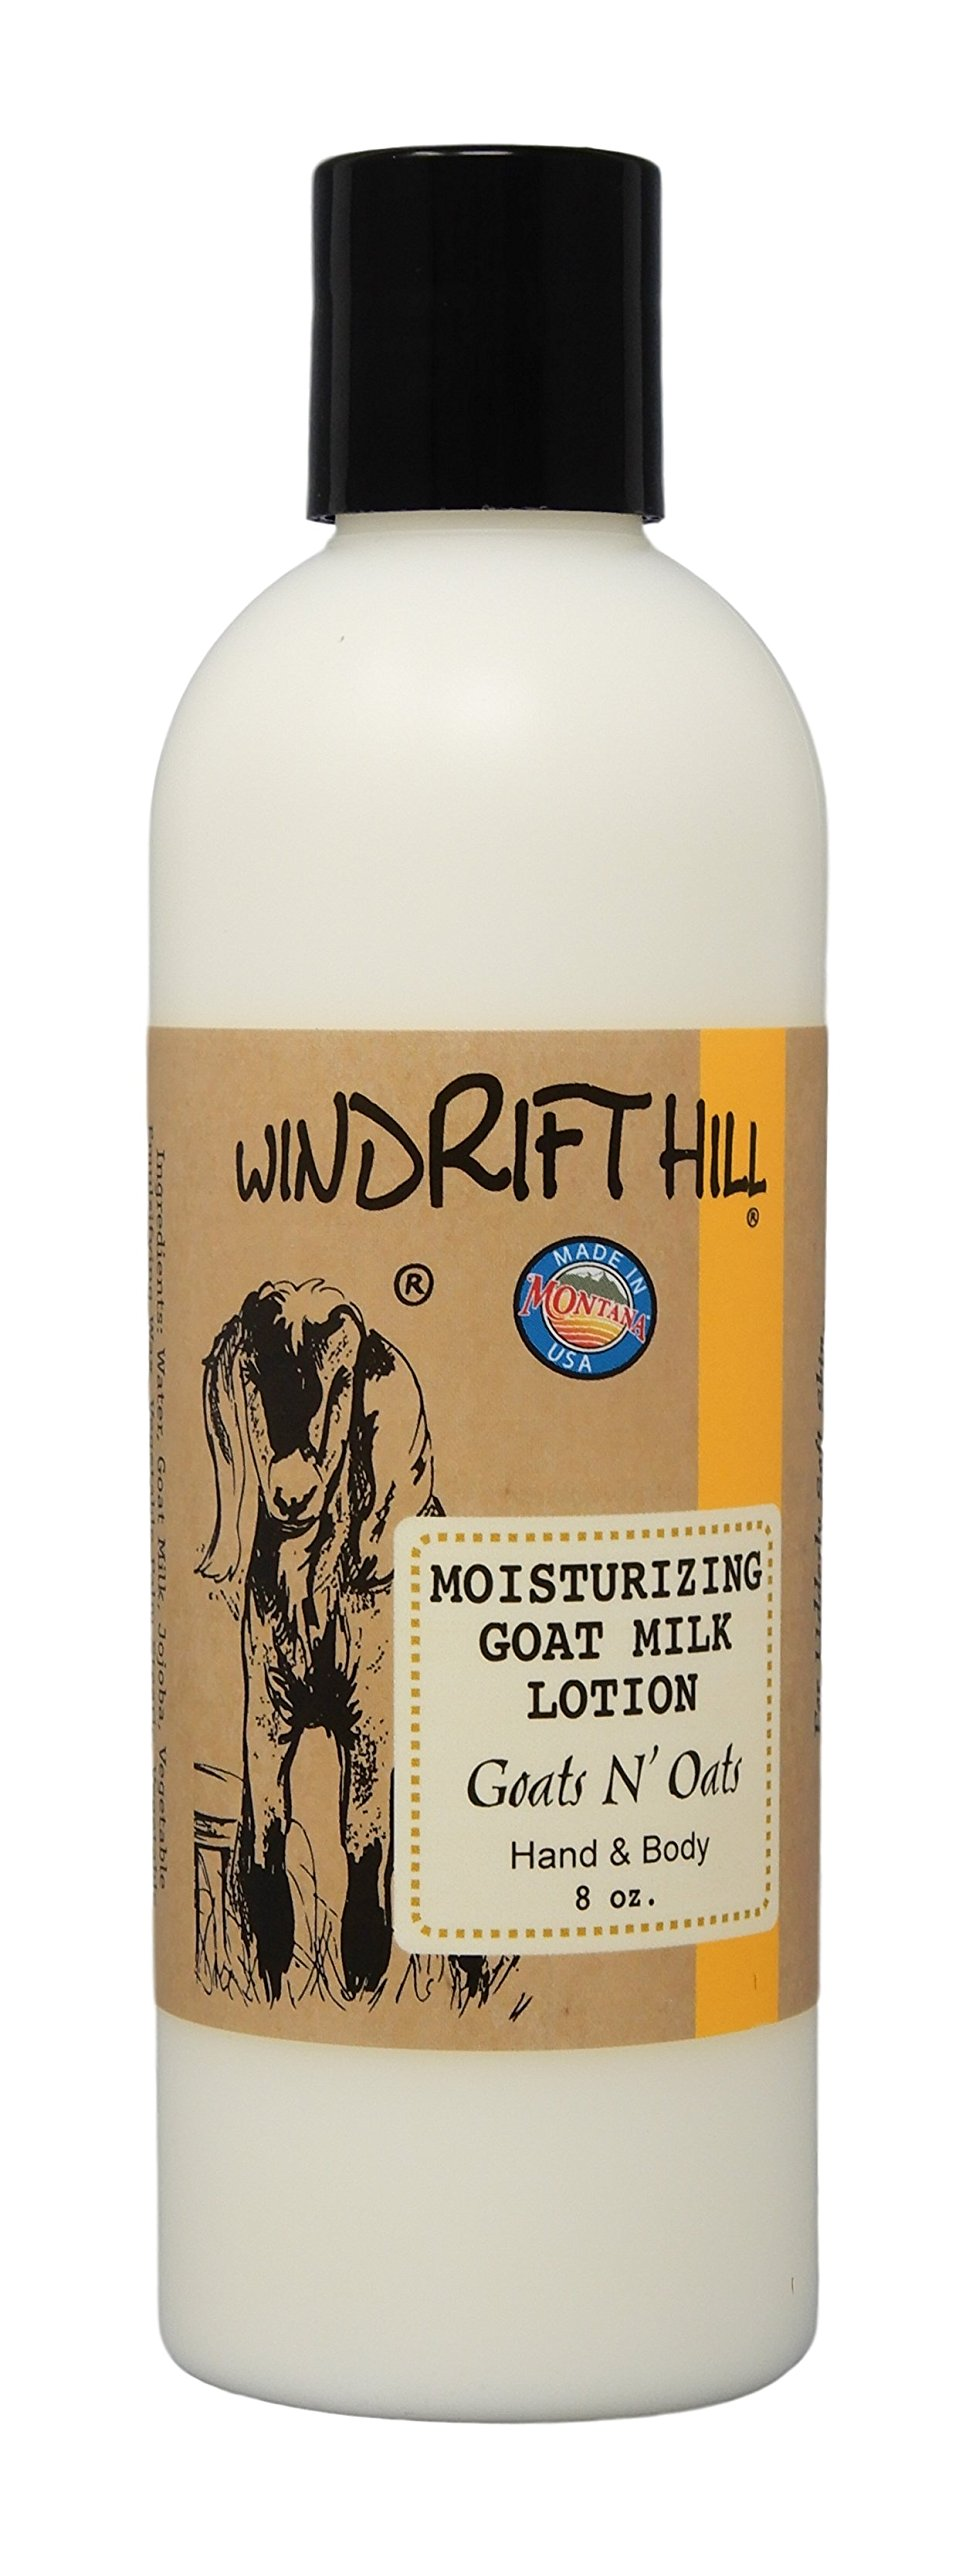 Amazoncom Windrift Hill Moisturizing Goats Milk Lotion Rain